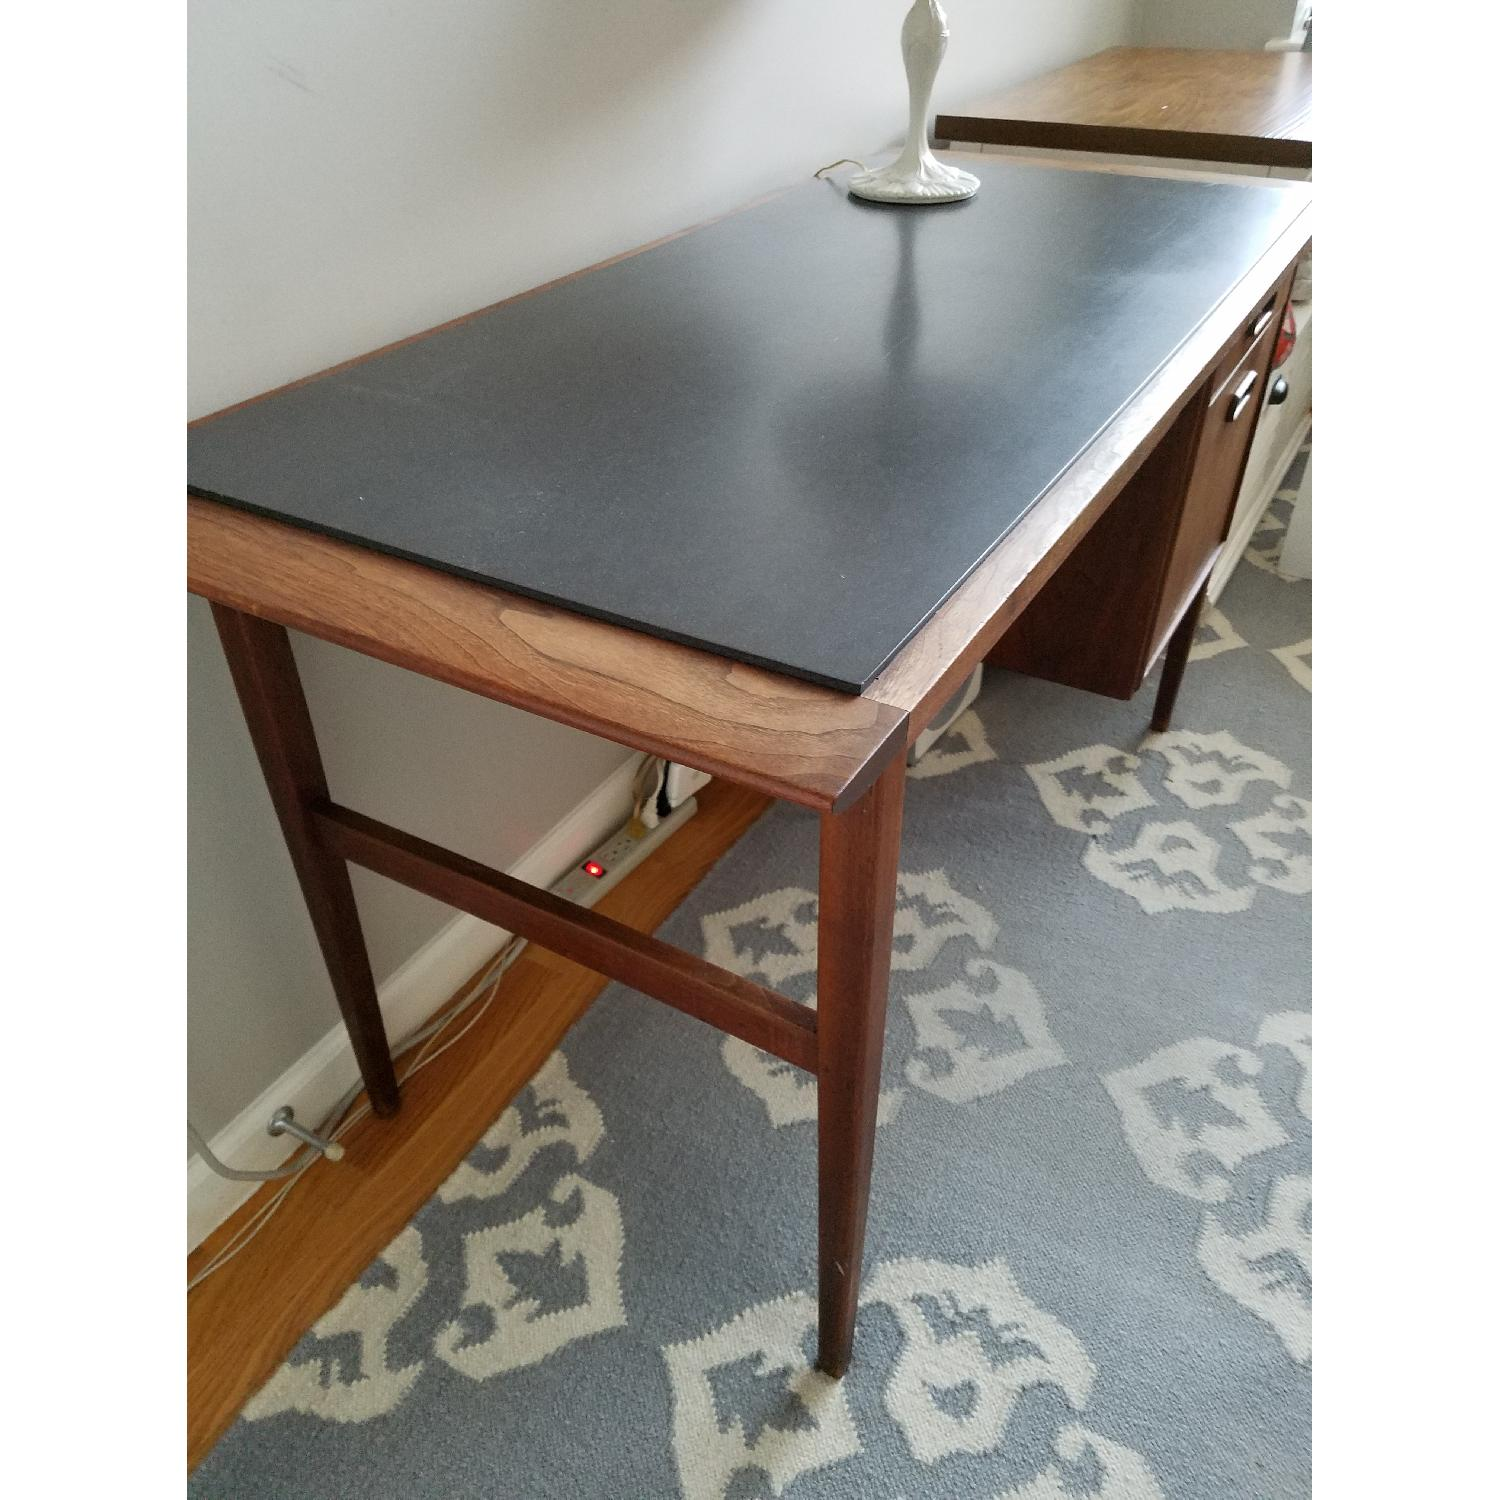 Mid Century Danish Style Brown Wood Desk w/ Dark Marble Top-2